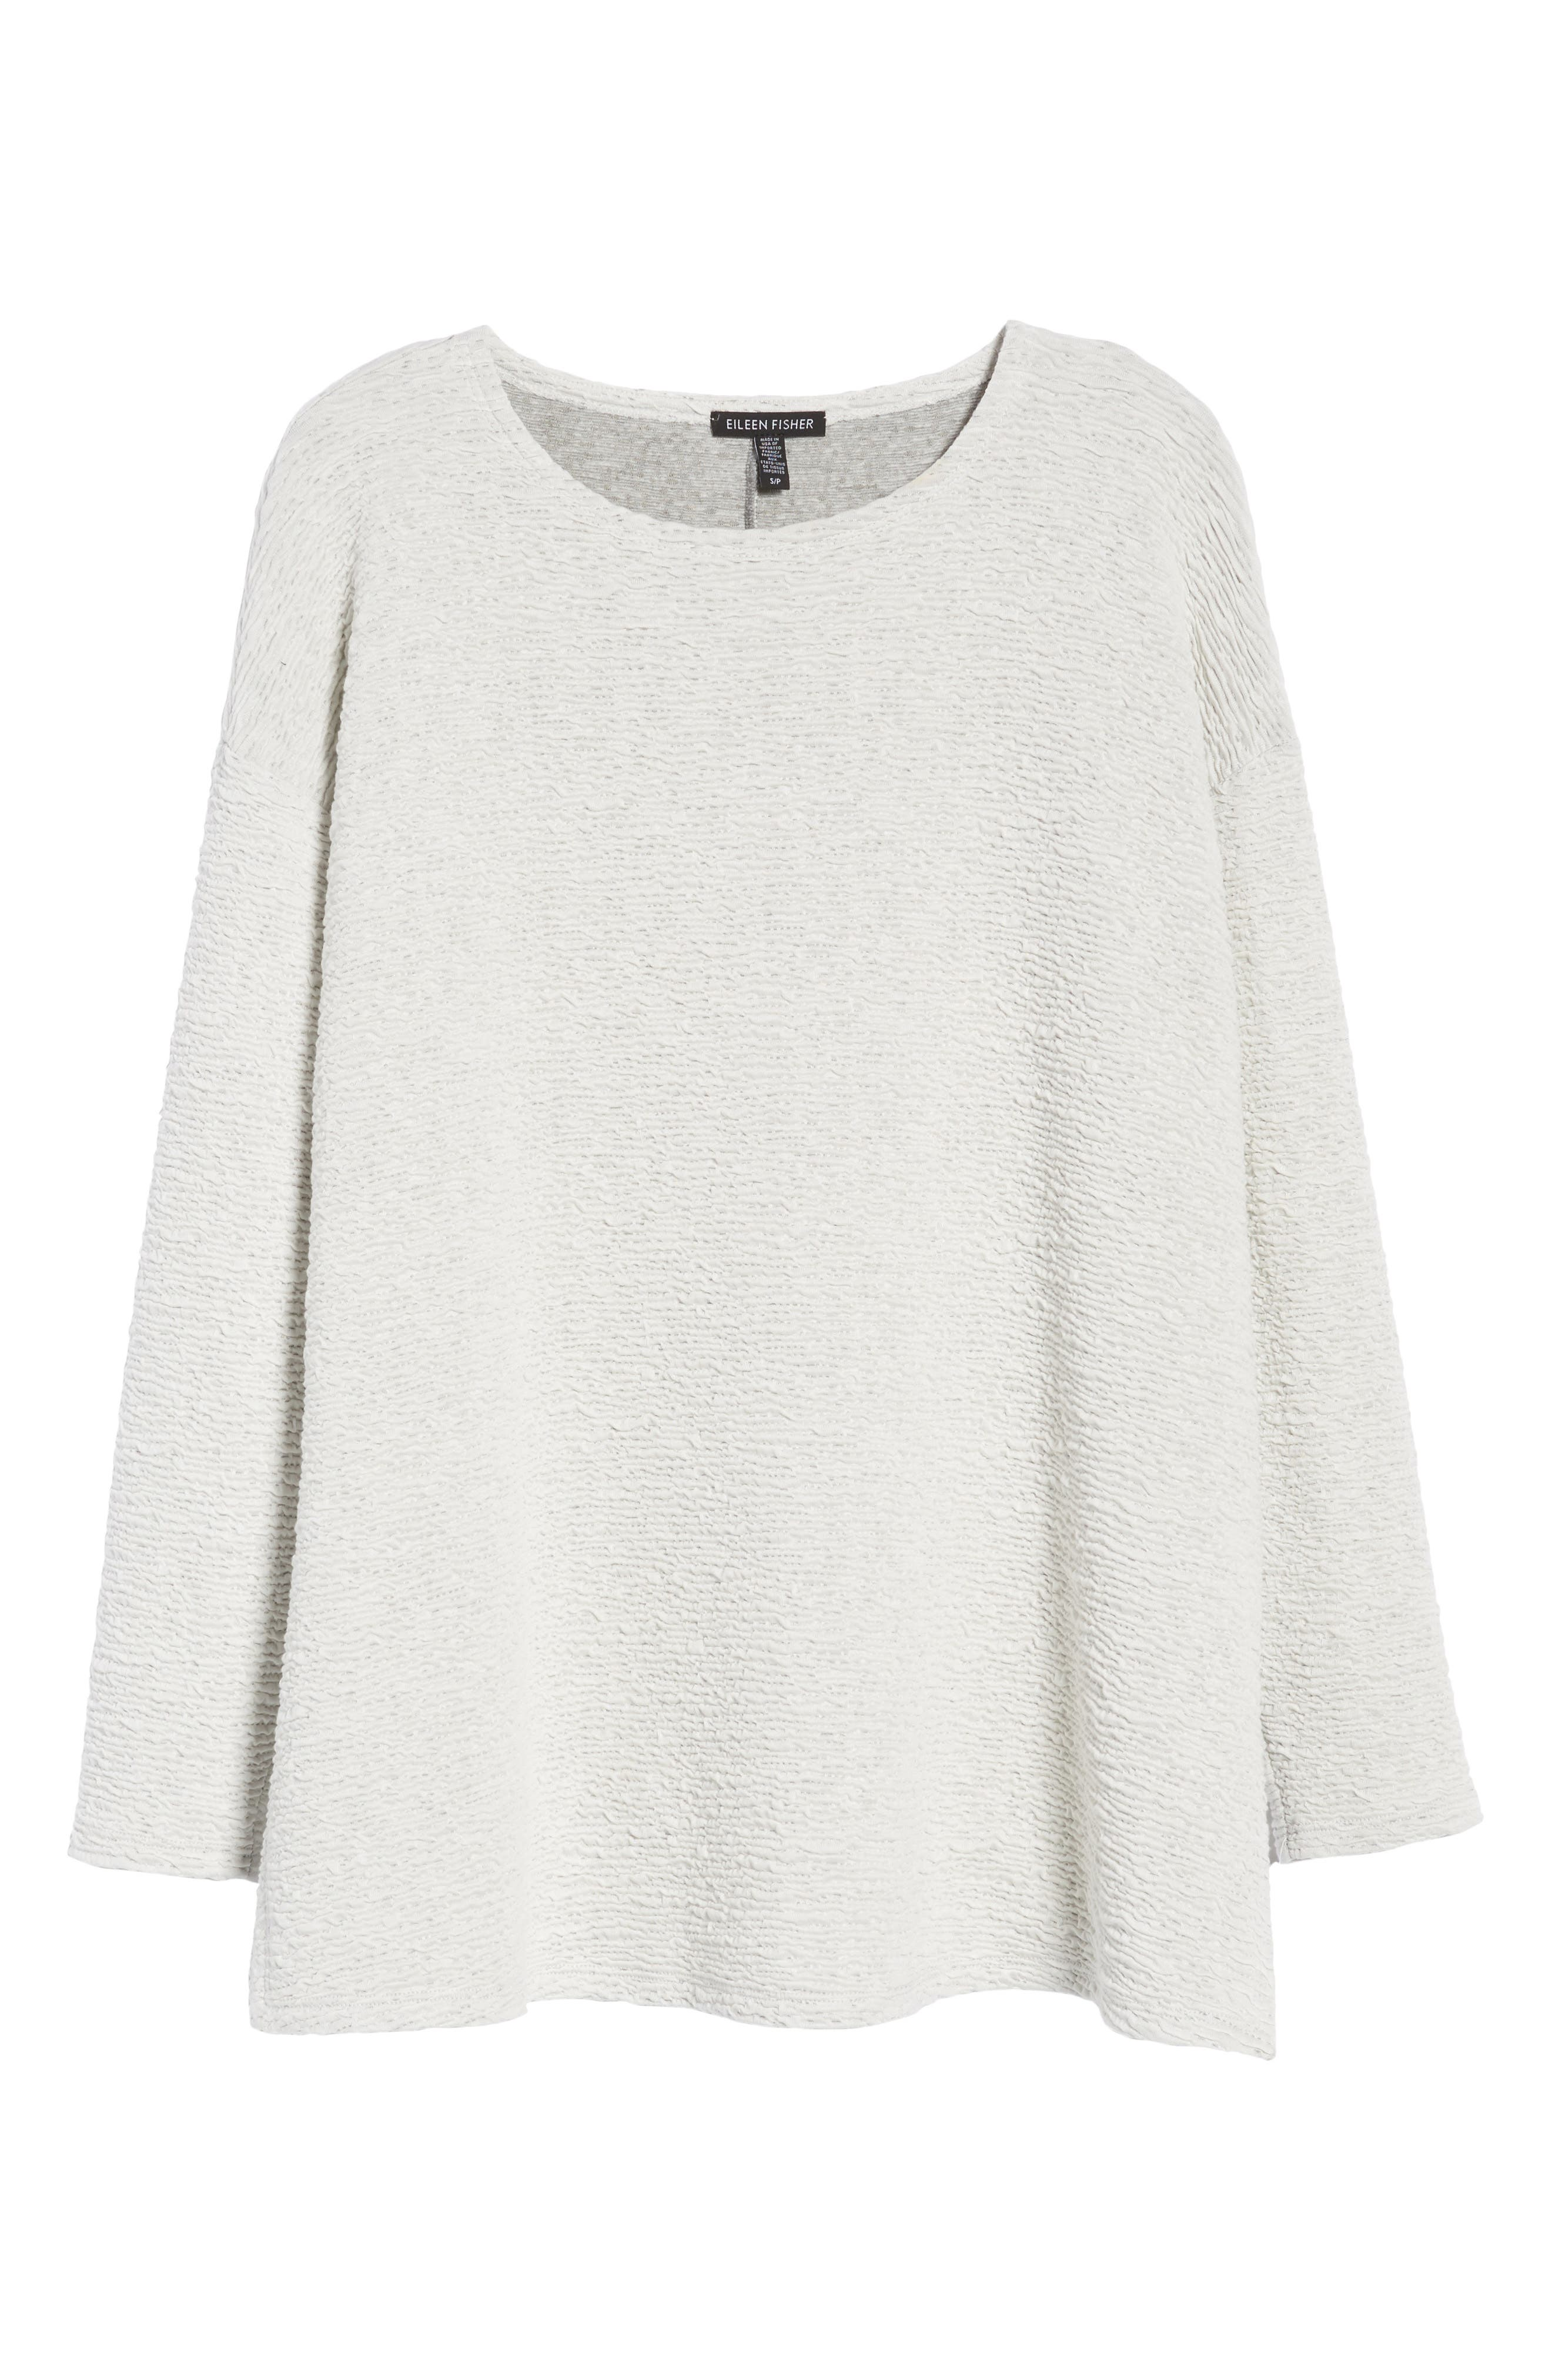 Textured Tencel<sup>®</sup> Lyocell Blend Top,                             Alternate thumbnail 7, color,                             100